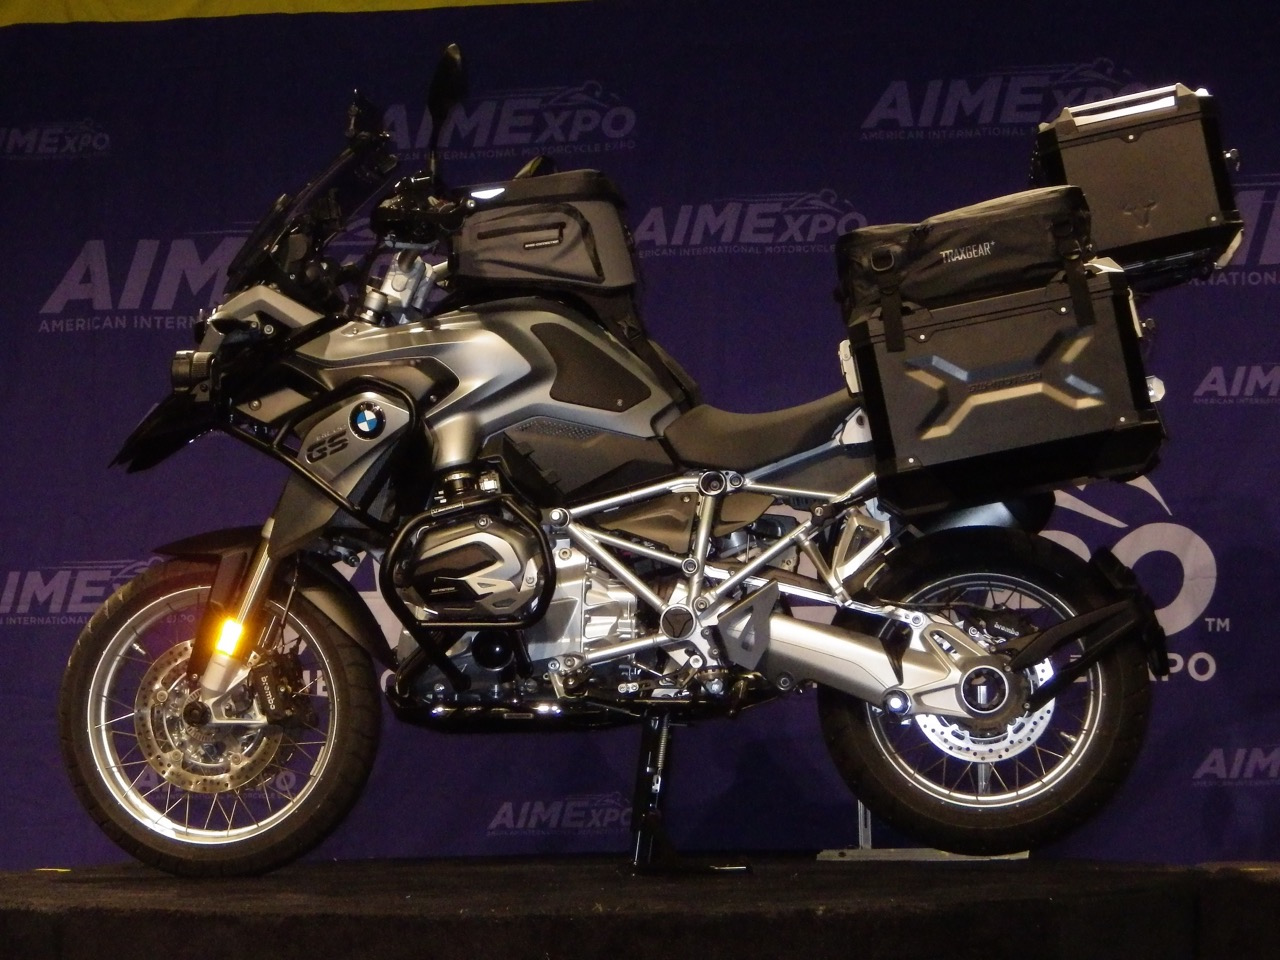 BMW R 1200 GS w/SW-Motech Trax Adventure hard cases